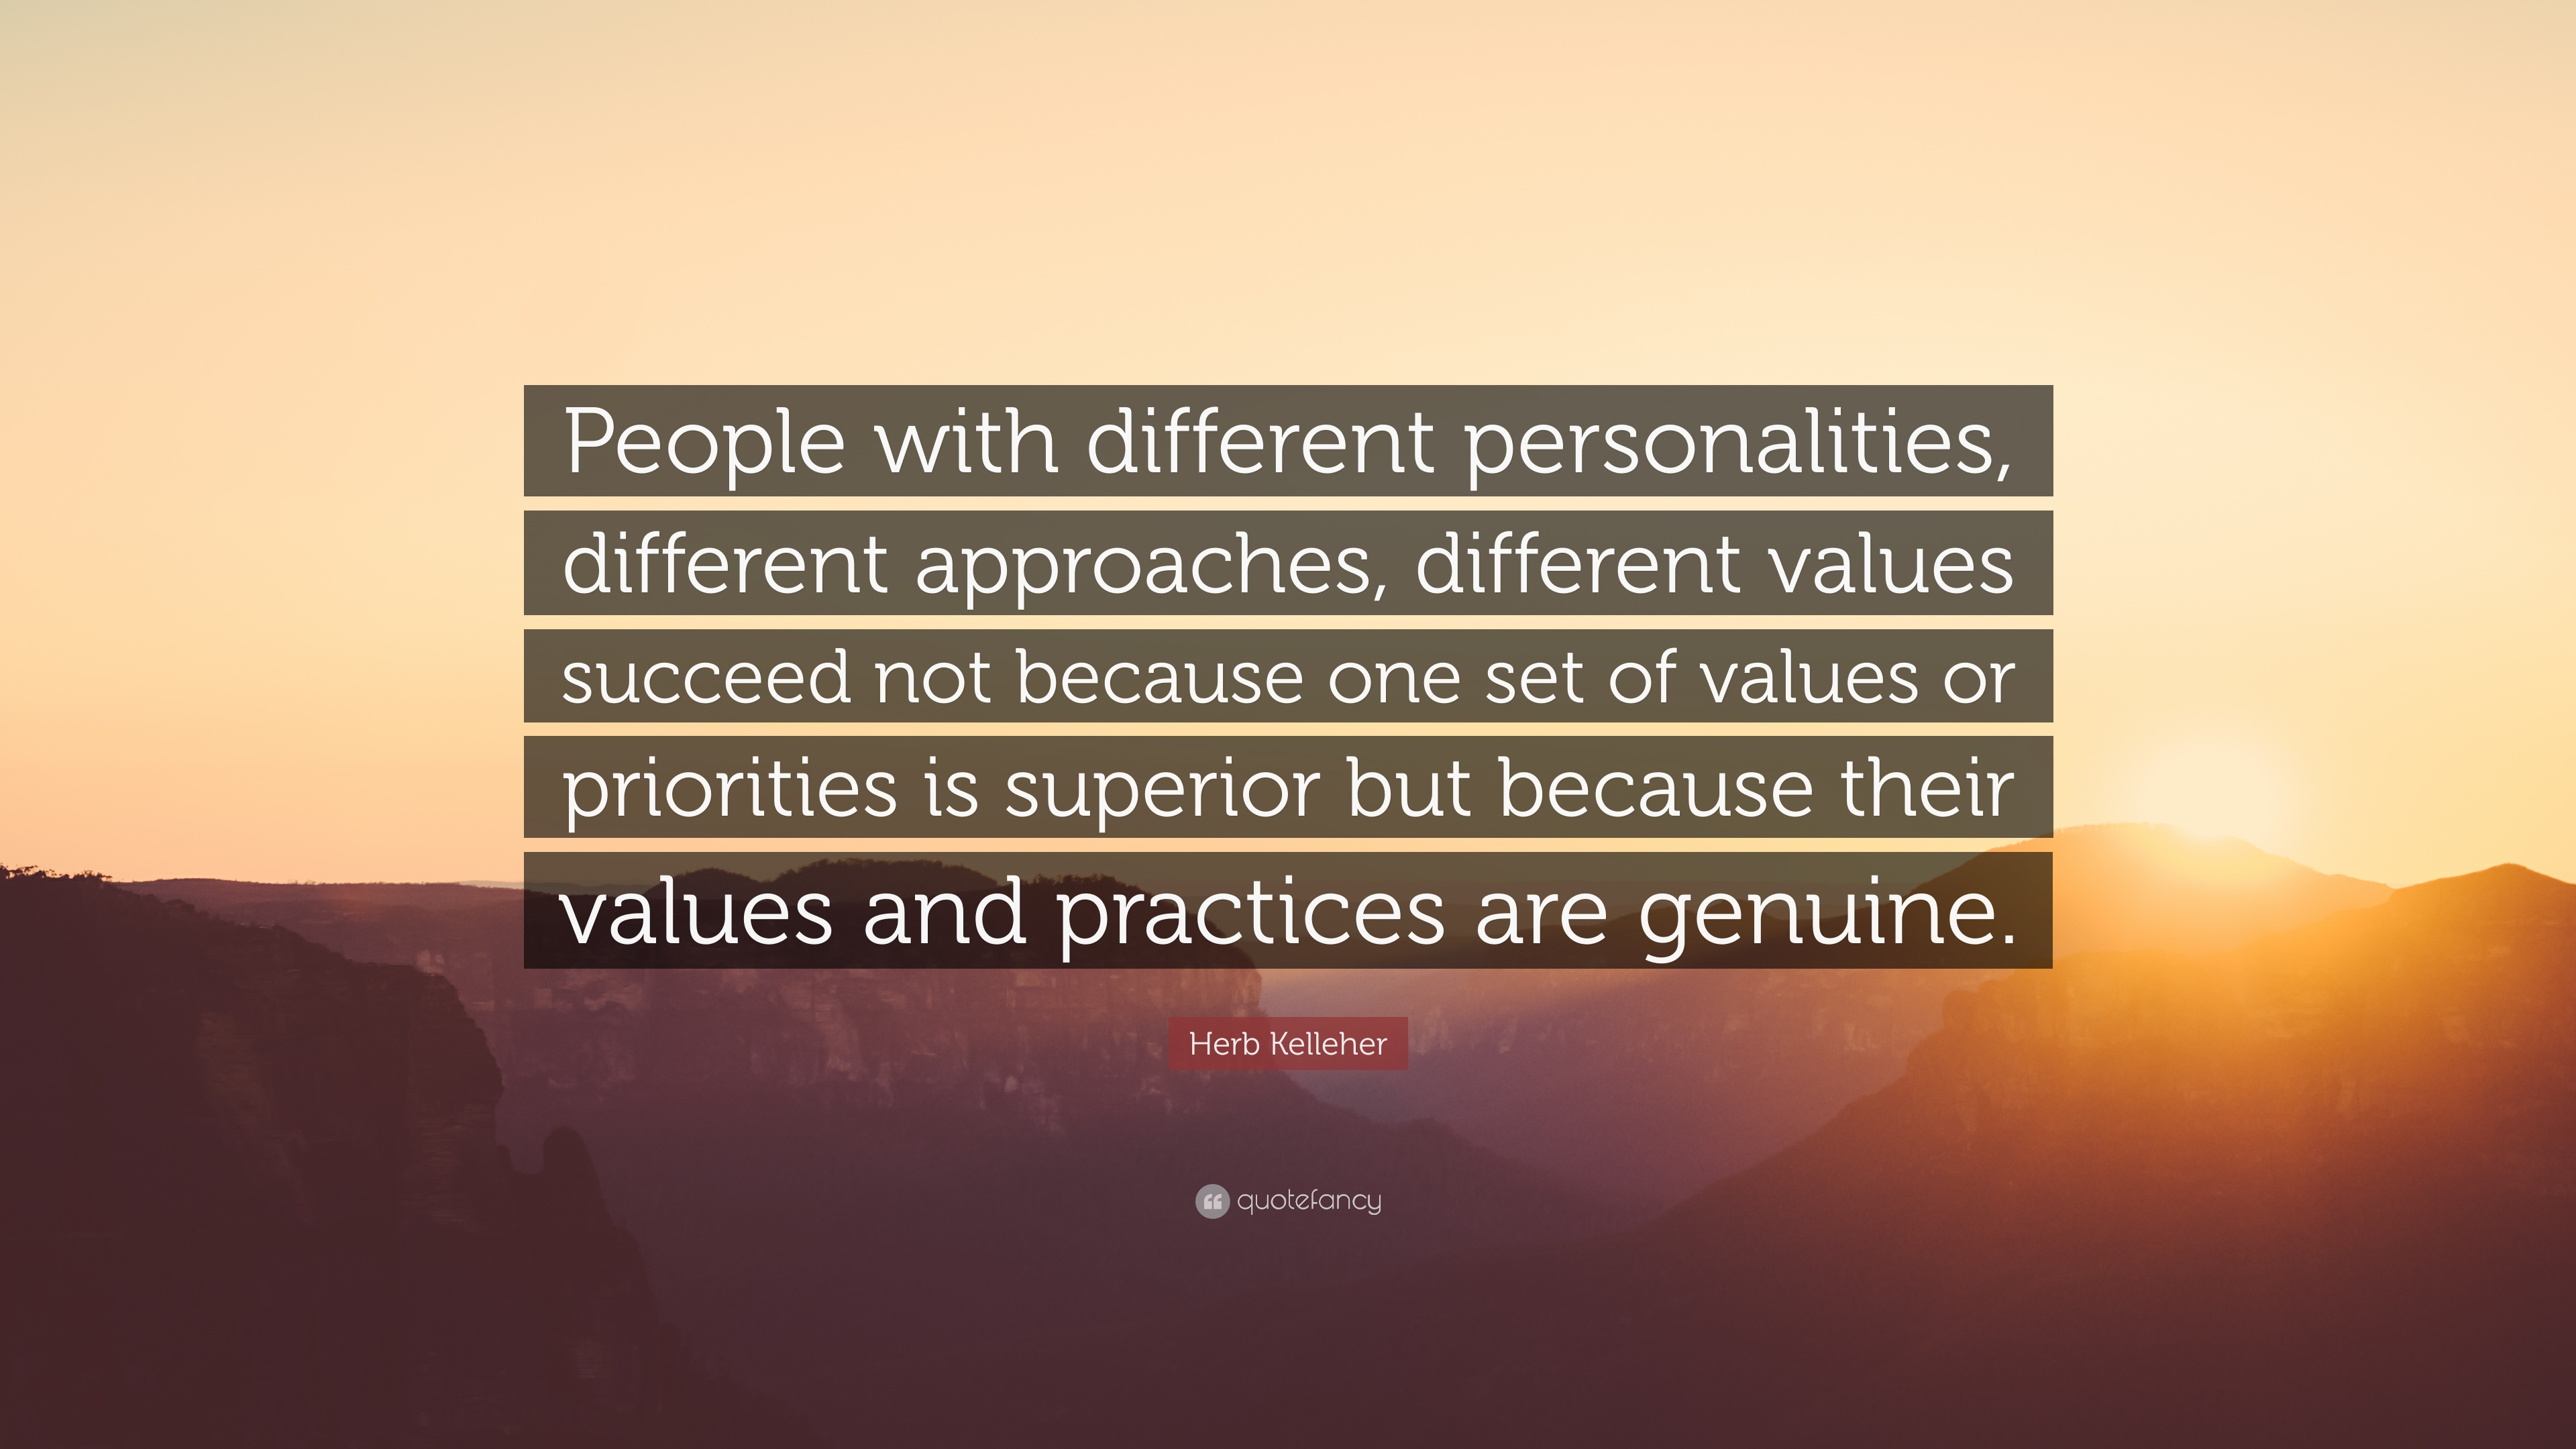 with different personalities, different approaches, different values ...